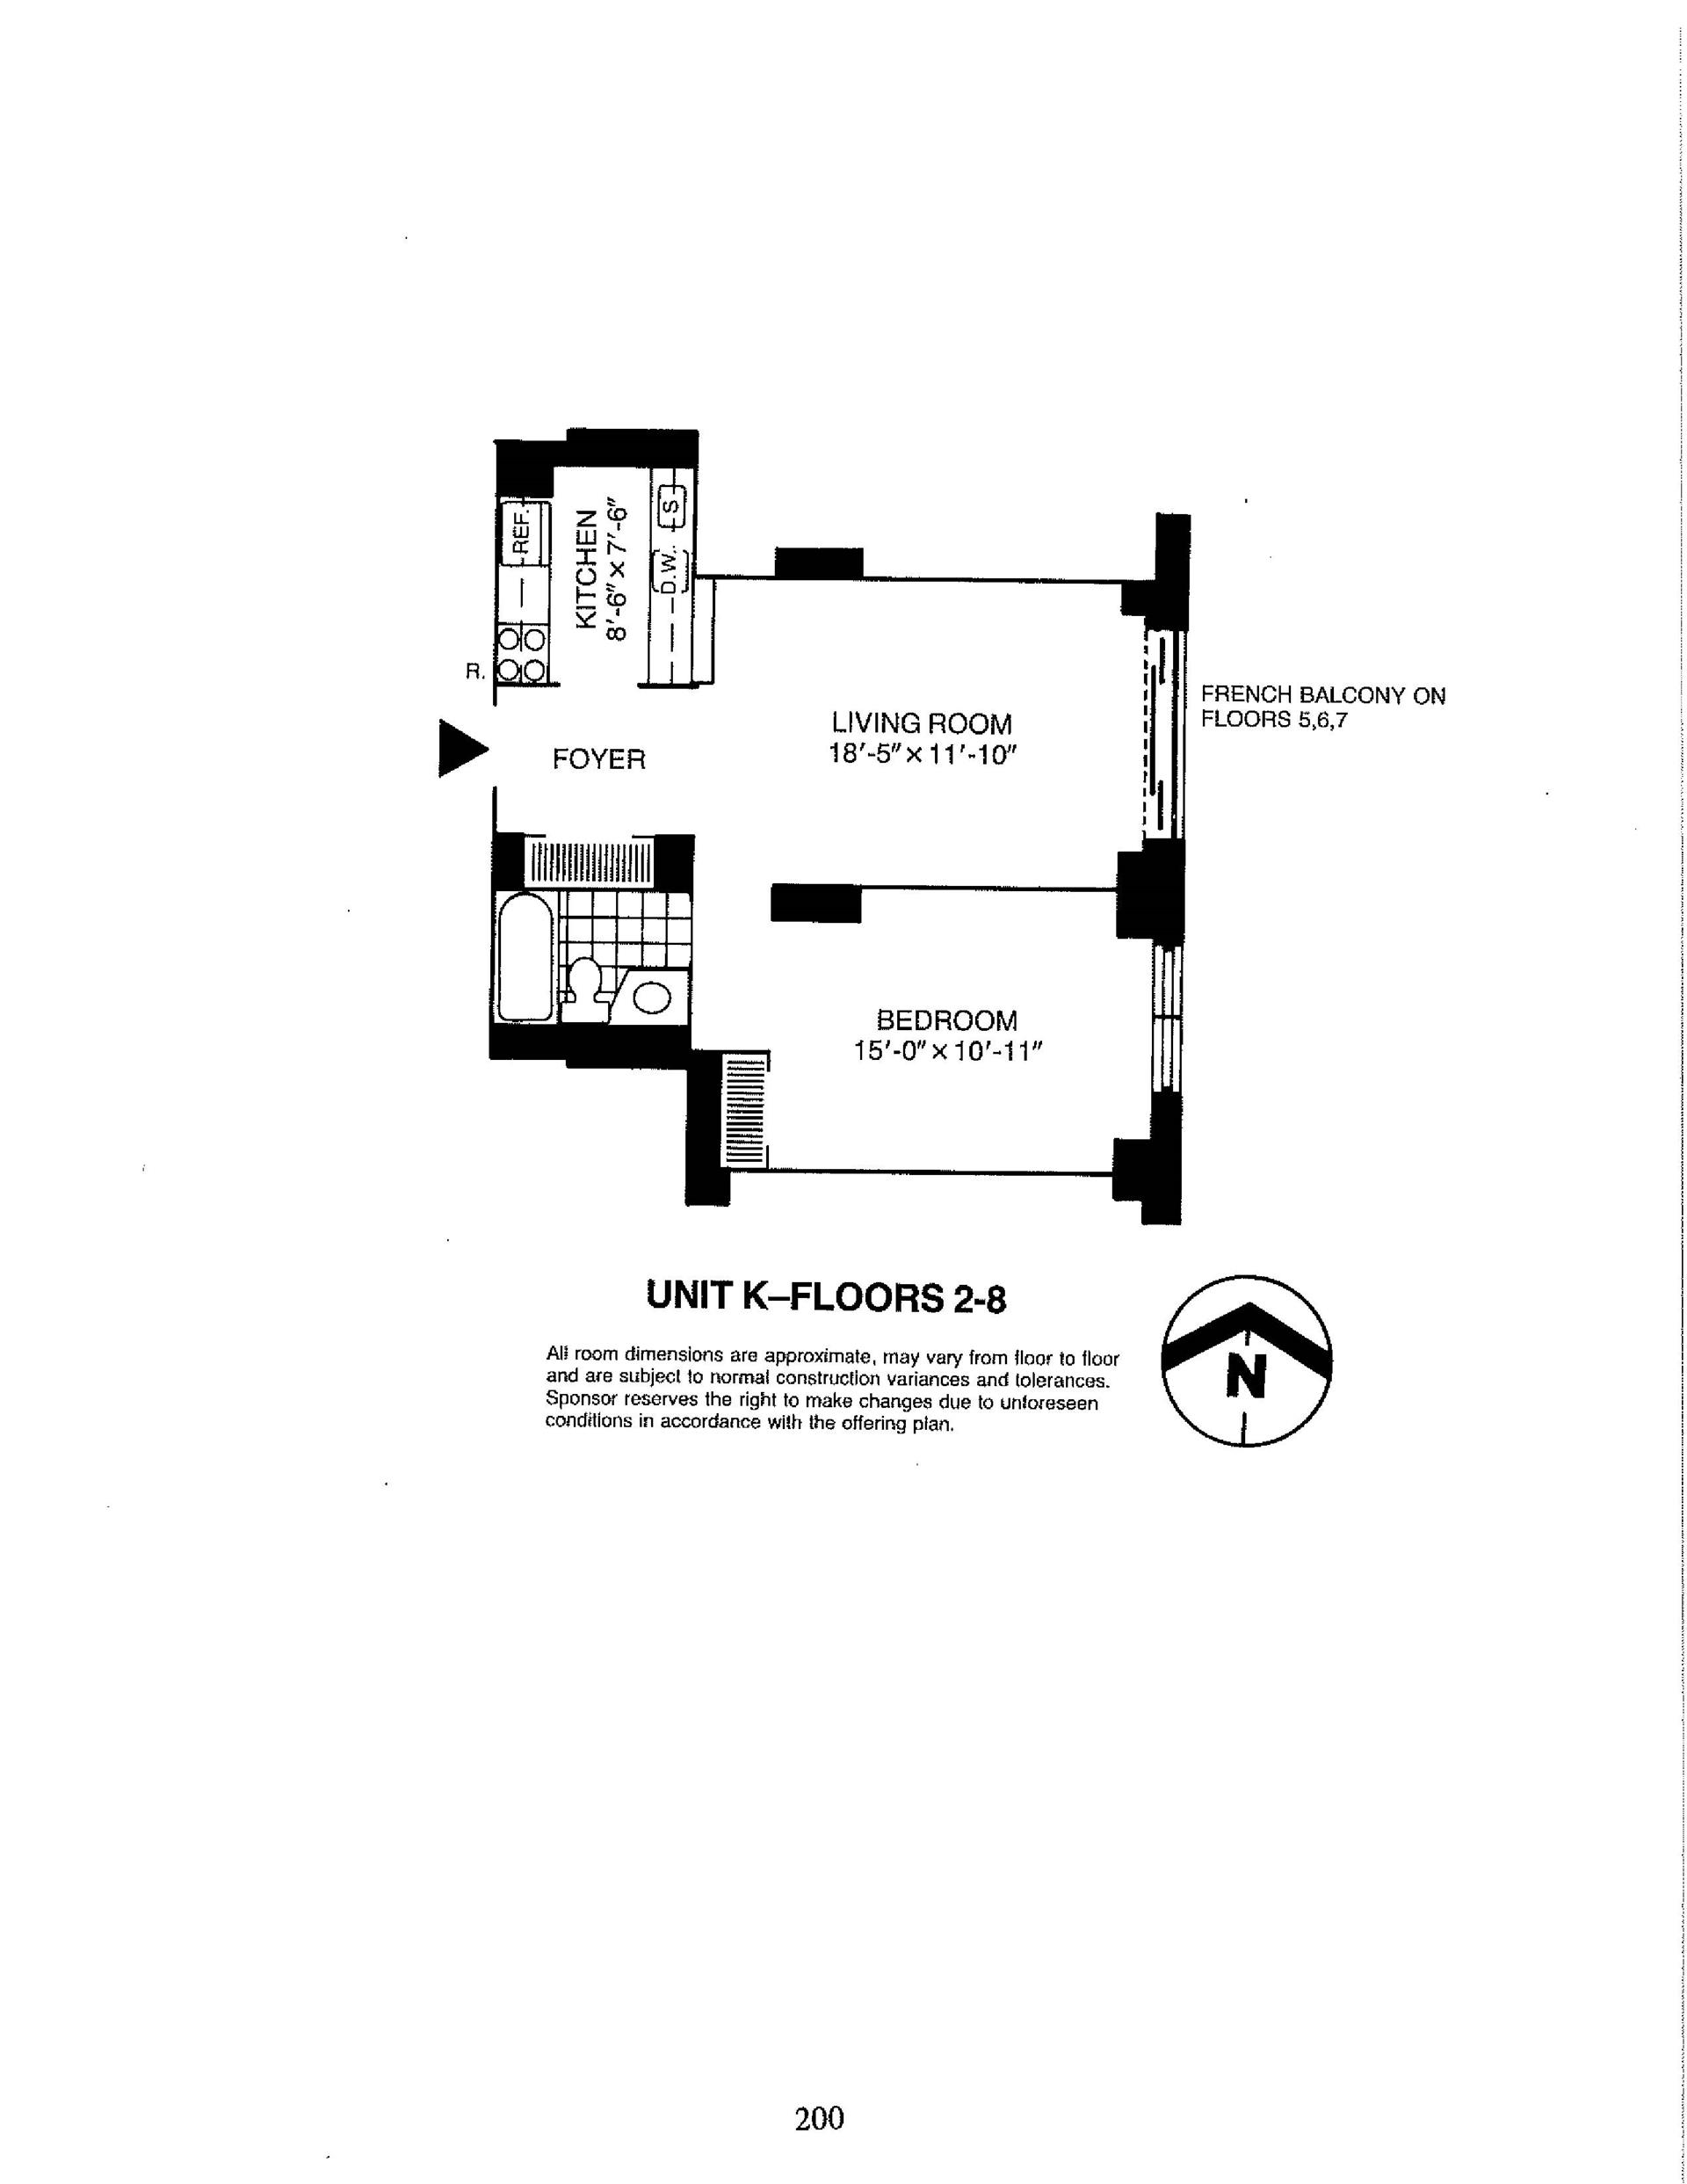 Floor plan of Liberty Residences, 380 Rector Pl, 4K - Battery Park City, New York